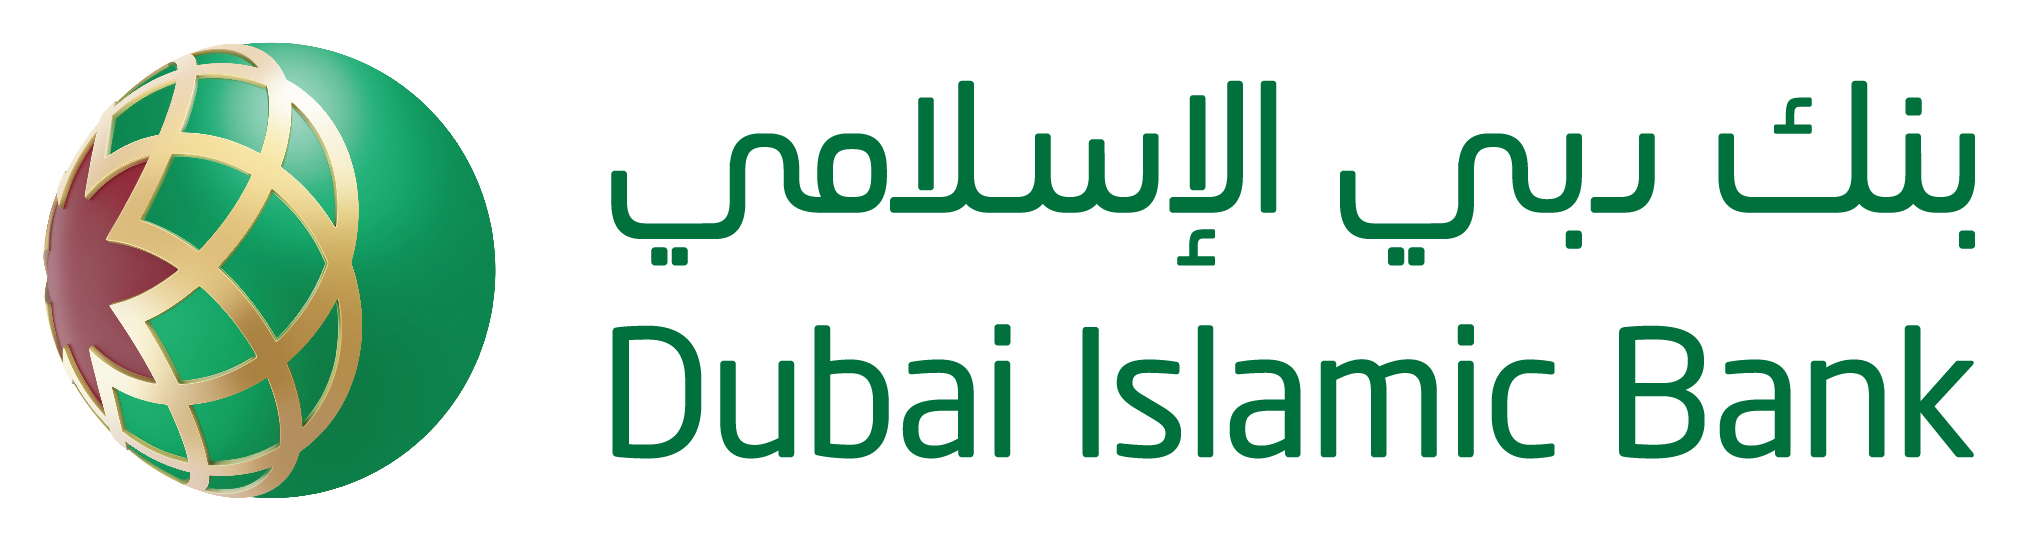 Dubai Islamic Bank - Johara Current Account